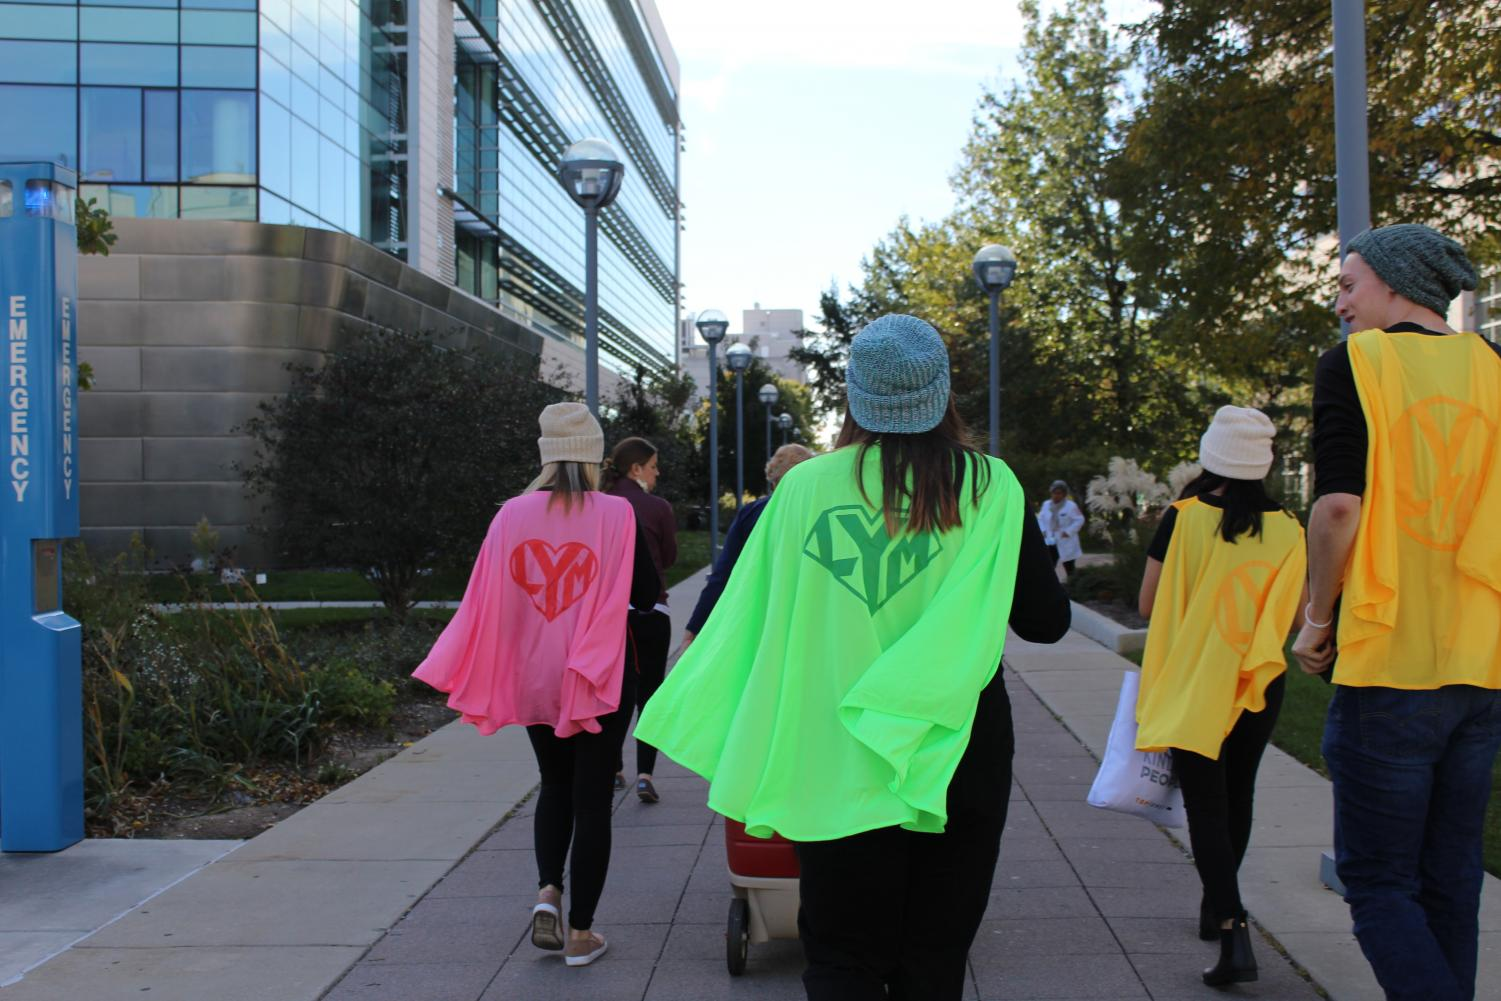 Club members visited Loyola Hospital dressed as superheroes, handing out beanies to children battling cancer.